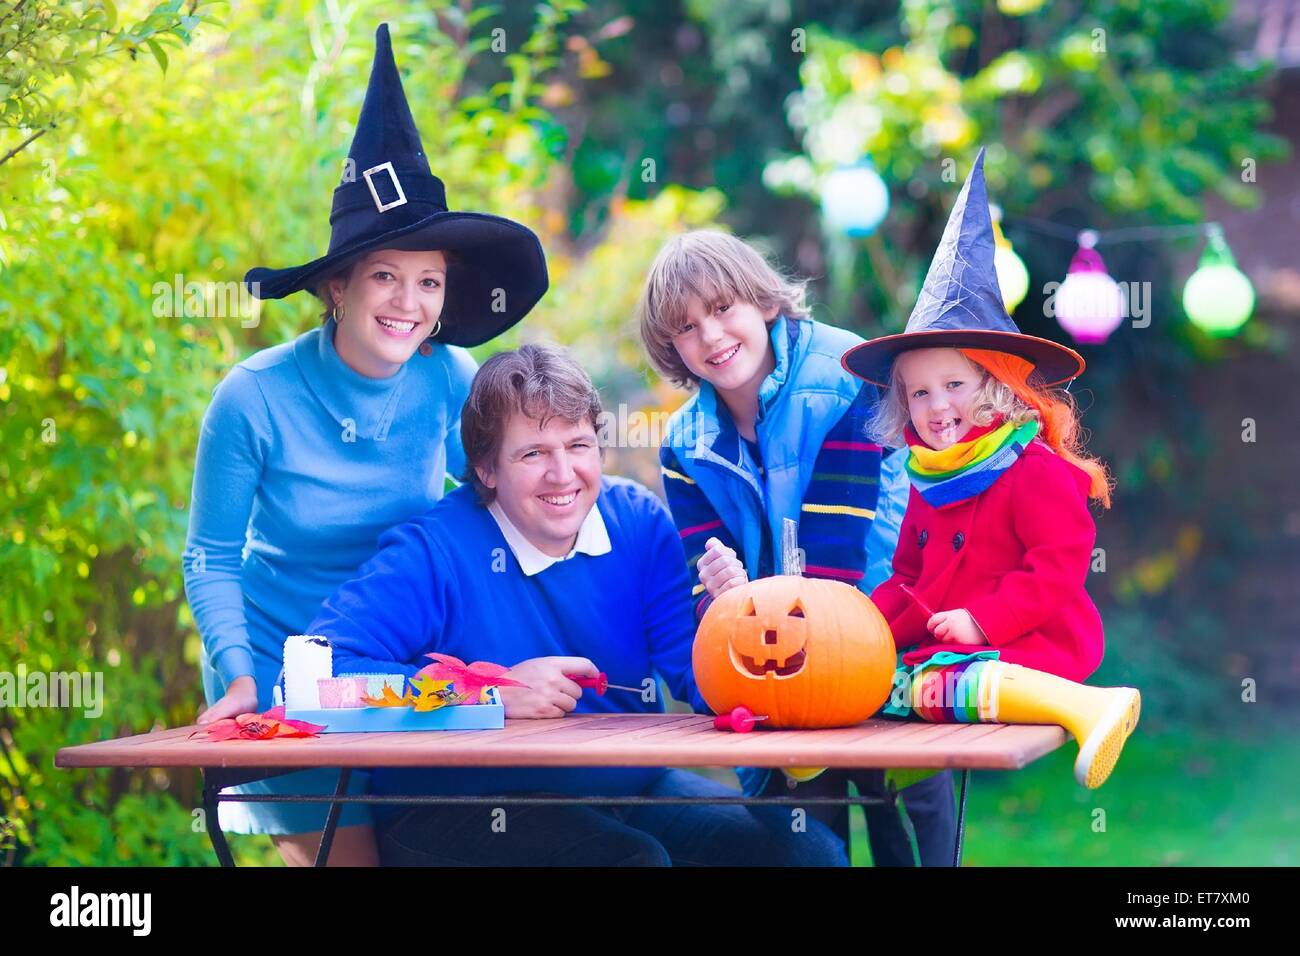 Happy family, parents with two children wearing witch costume and hat celebrating Halloween and pumpkin carving - Stock Image